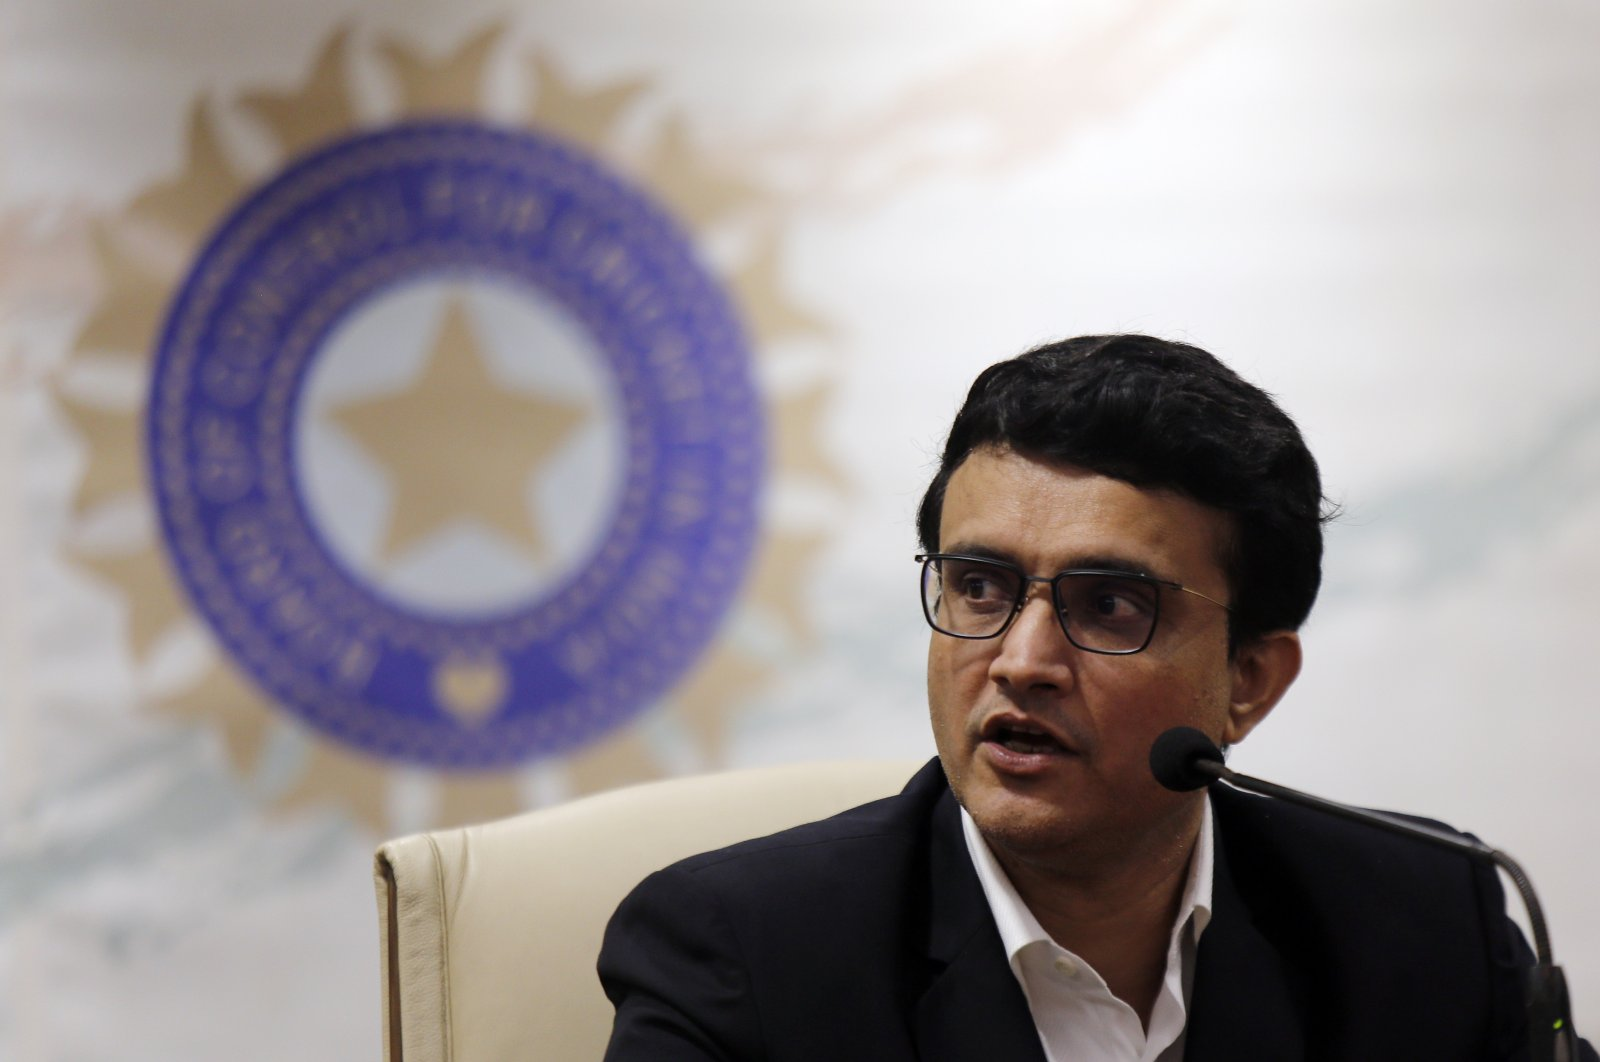 President of the Board of Control for Cricket in India (BCCI) Sourav Ganguly speaks at a press conference in Mumbai, India, Oct. 23, 2019. (AP Photo)